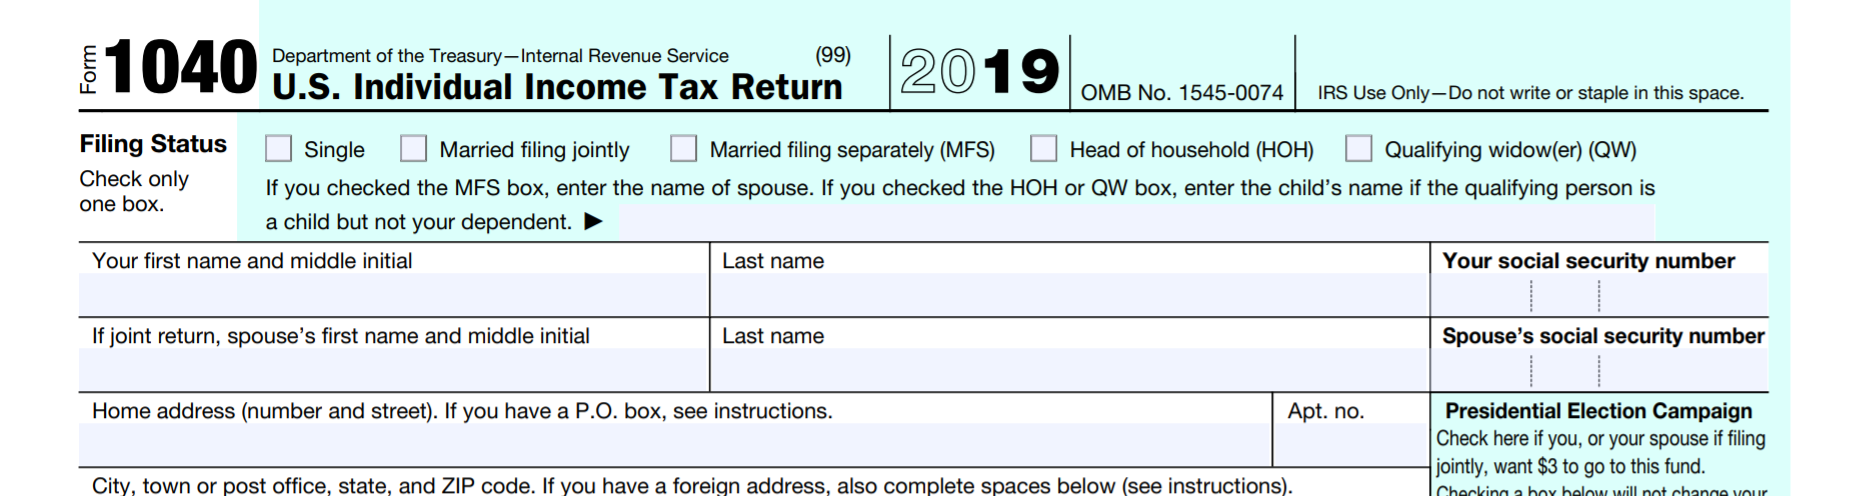 Expect Long Delays In Getting Refunds If You File A Paper Tax Return | Tax  Policy Center